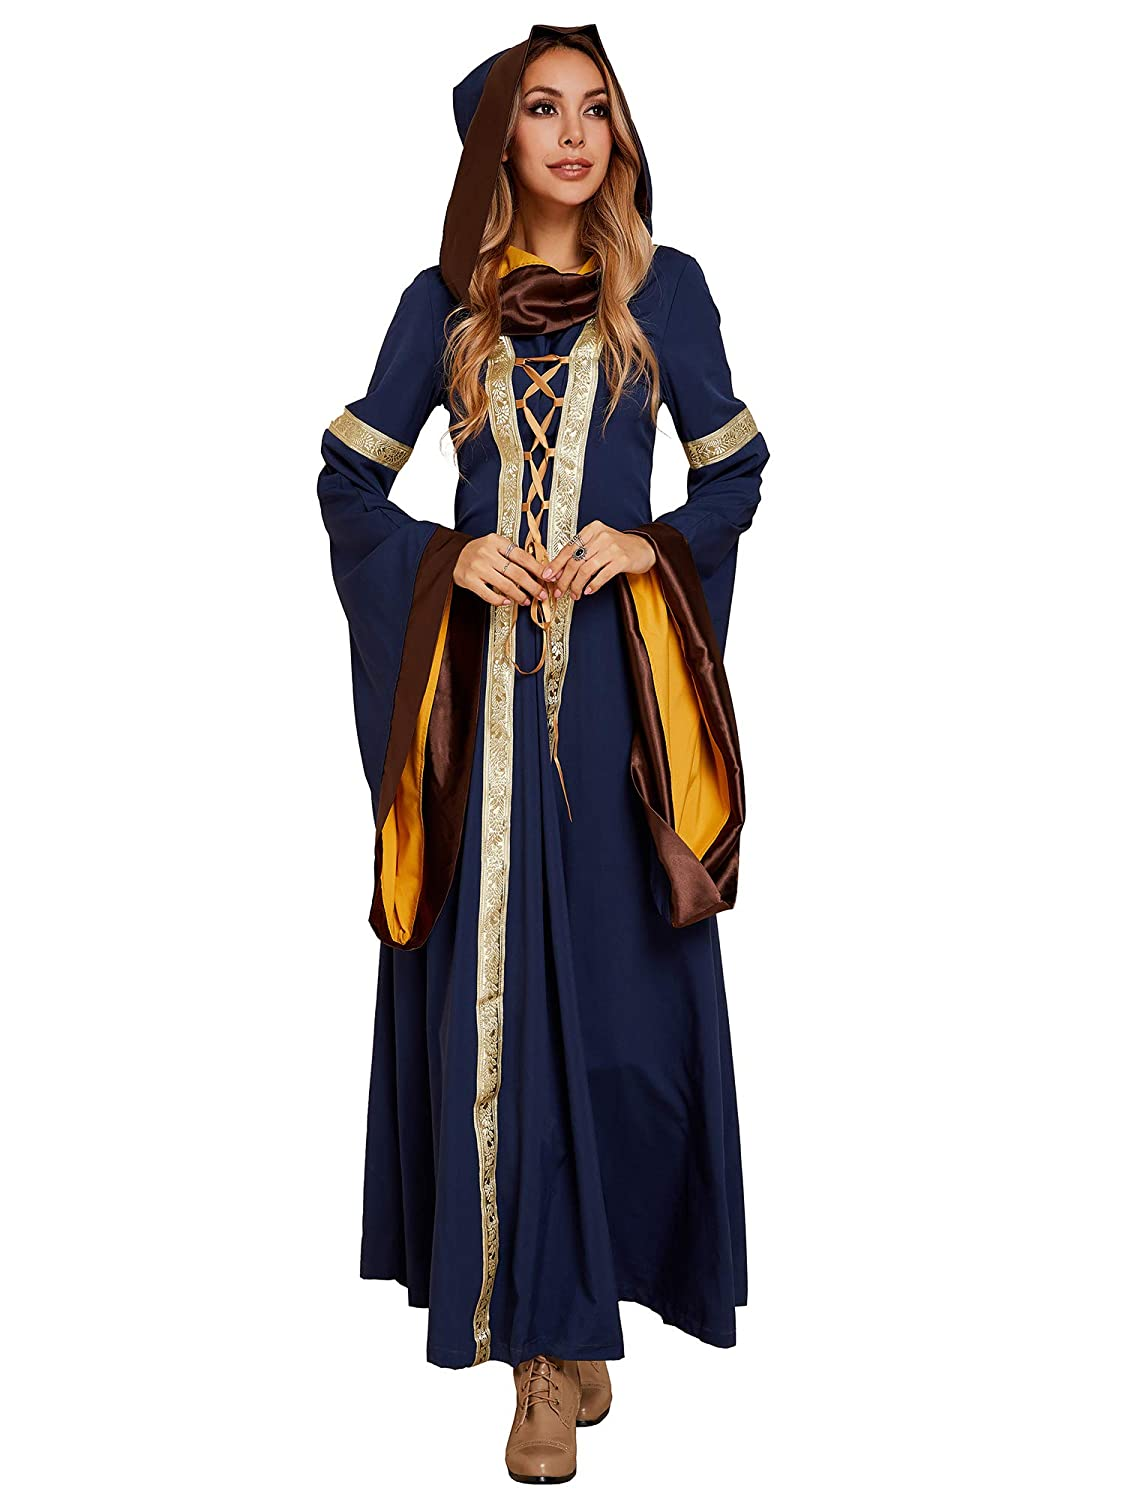 6d2905f414b1f Ofenbuy Womens Deluxe Victorian Dress Vintage Gothic Renaissance Medieval  Dresses Cosplay Halloween